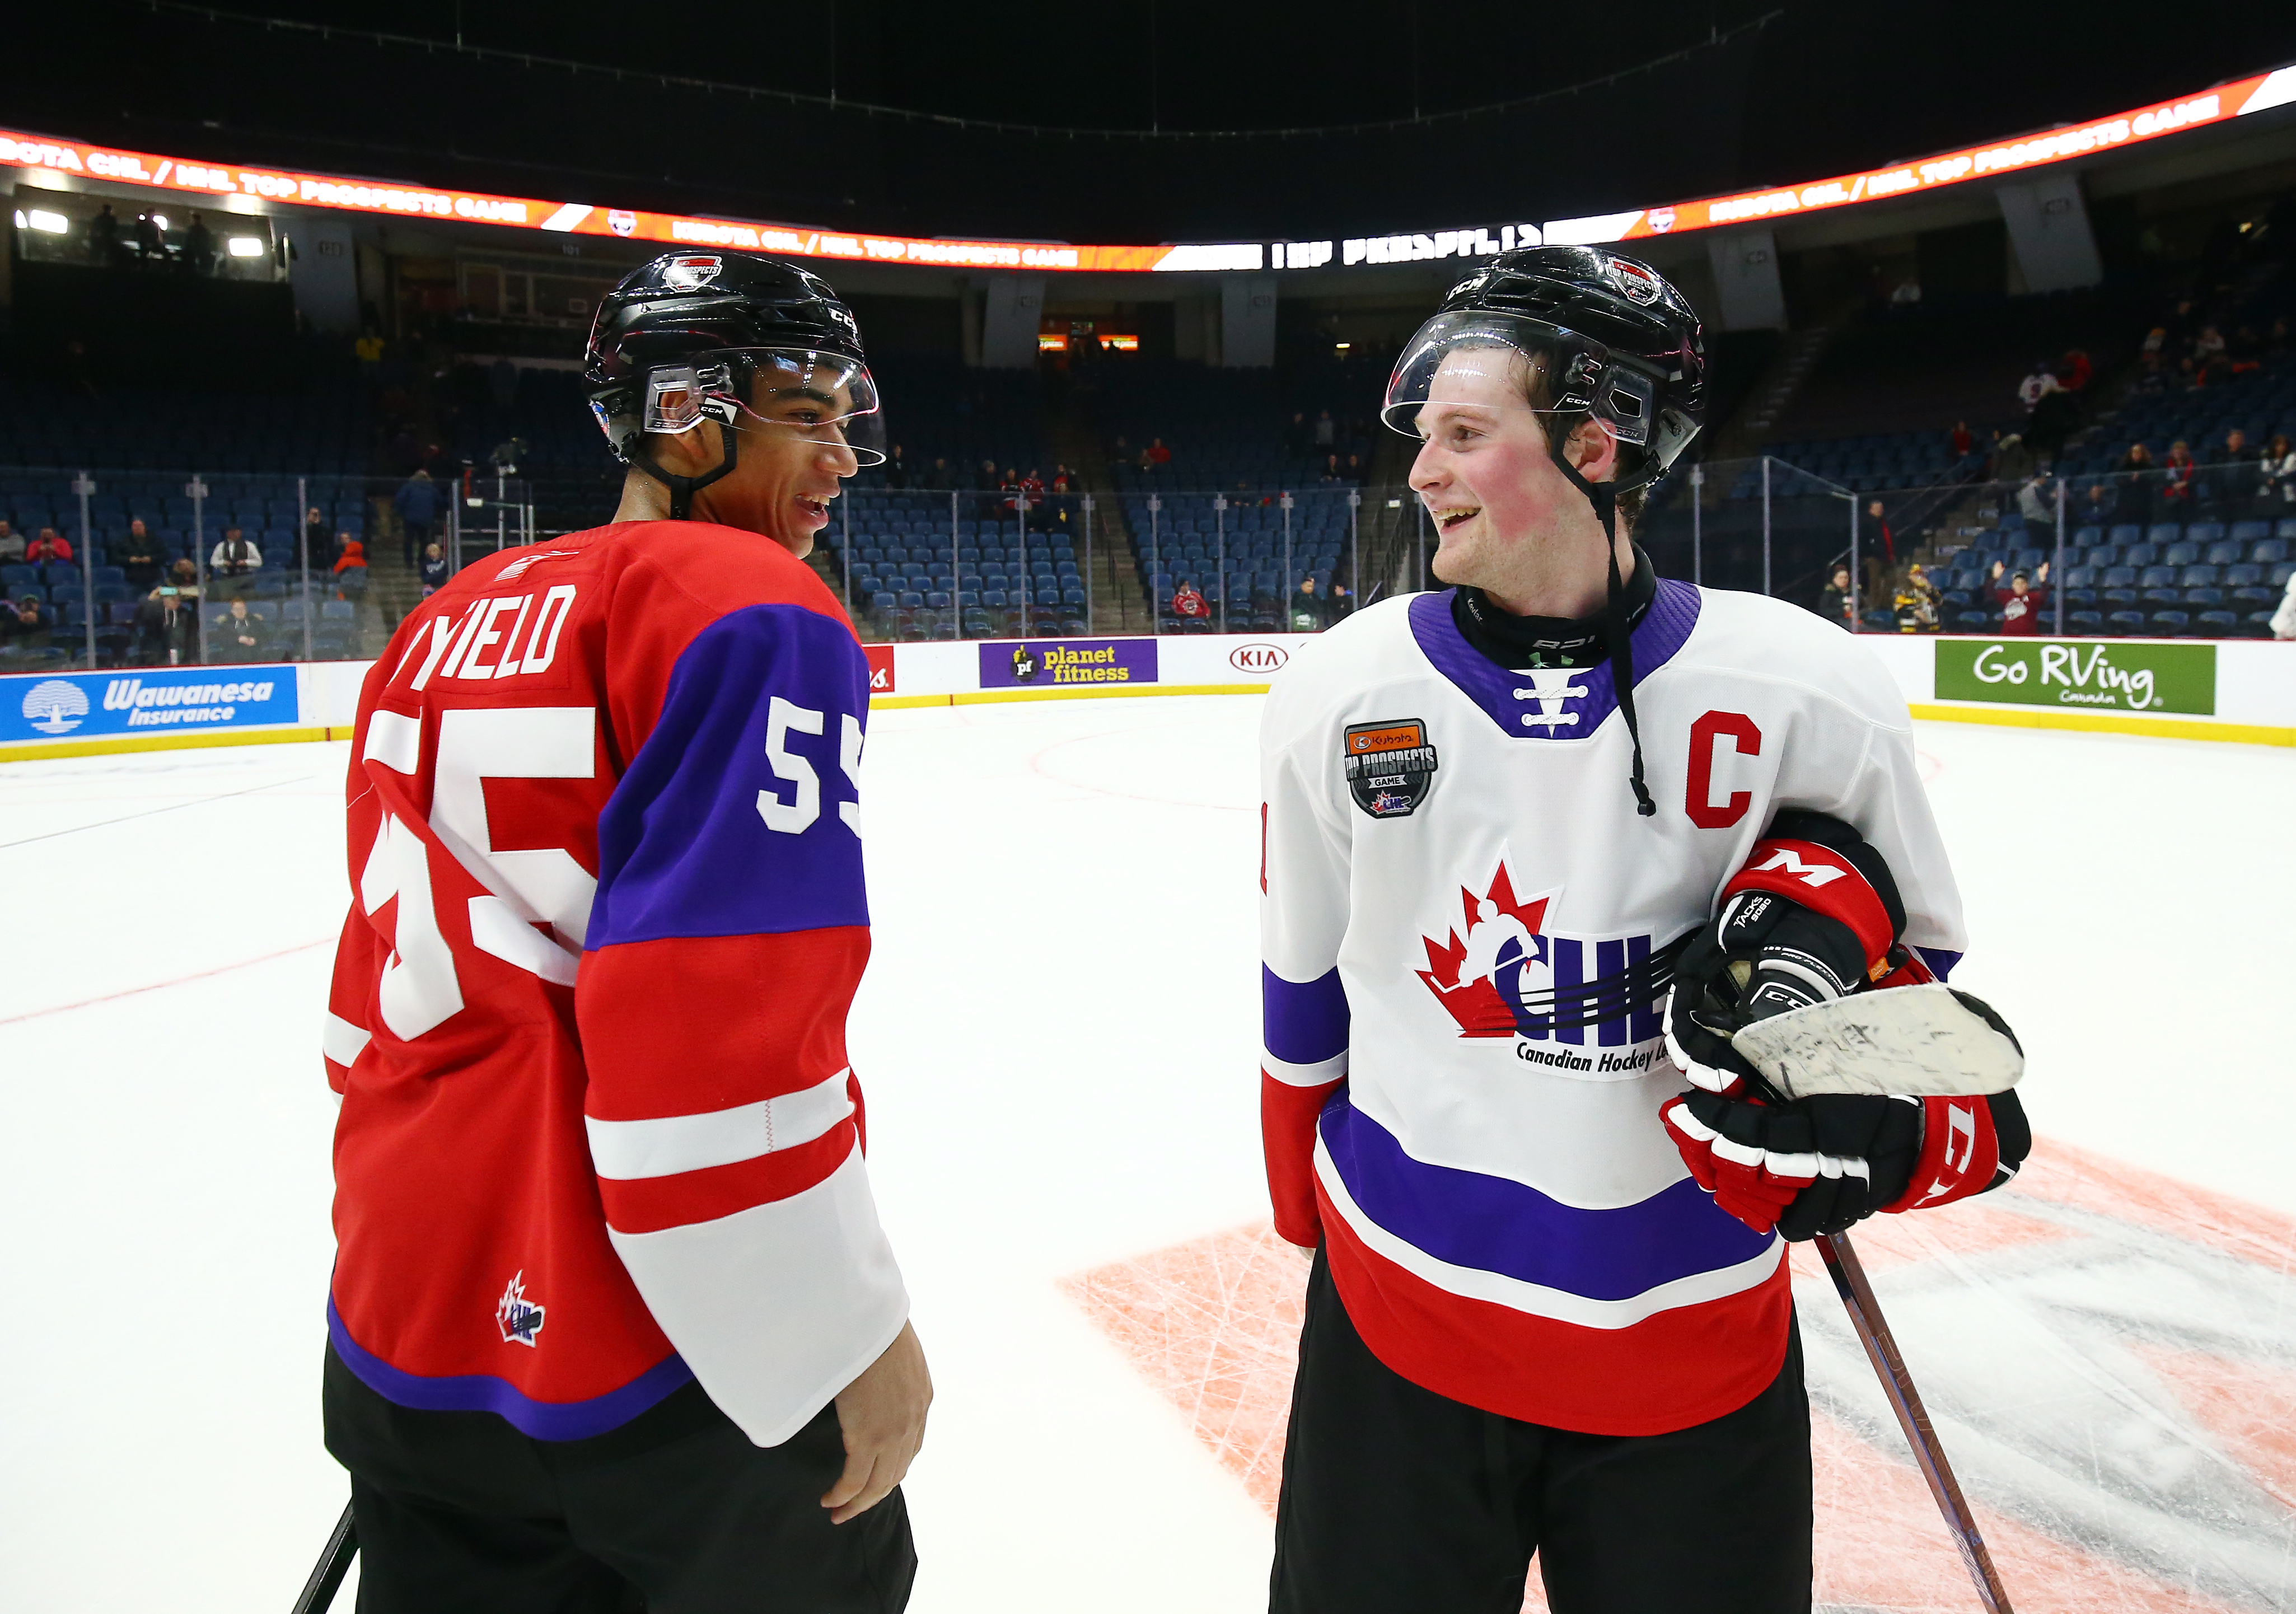 HAMILTON, ON - JANUARY 16: Alexis Lafreniere #11 of Team White and Quinton Byfield #55 of Team Red talk following the final whistle of the 2020 CHL/NHL Top Prospects Game at FirstOntario Centre on January 16, 2020 in Hamilton, Canada.